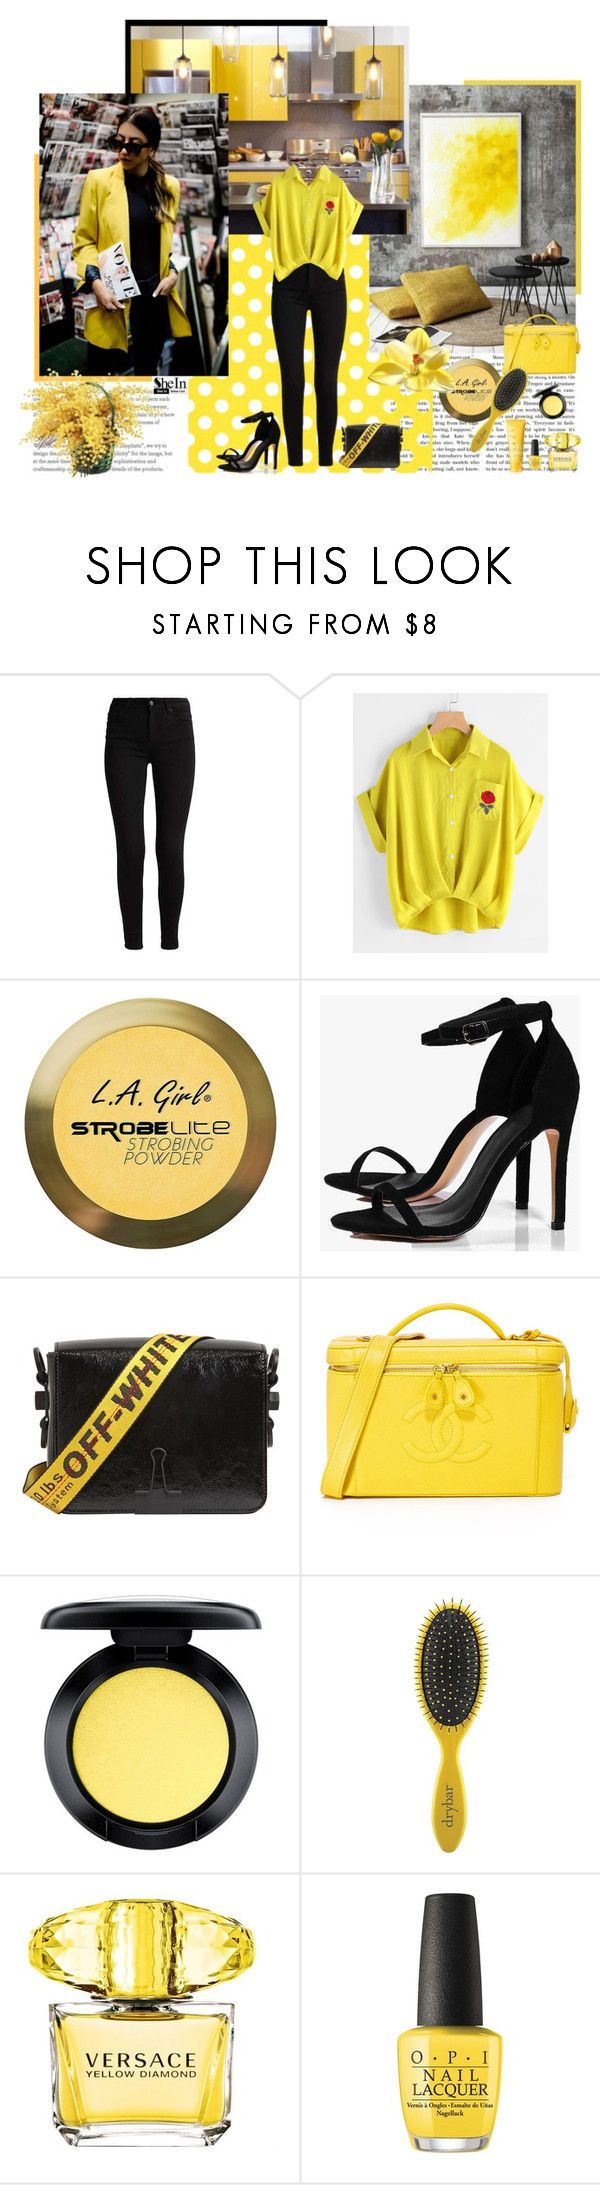 """""""Contest (shein)! - Win 30$ coupon!"""" by vivienlacroix ❤ liked on Polyvore featuring Charlotte Russe, Boohoo, Off-White, MAC Cosmetics, Drybar, Versace, OPI and Clinique"""